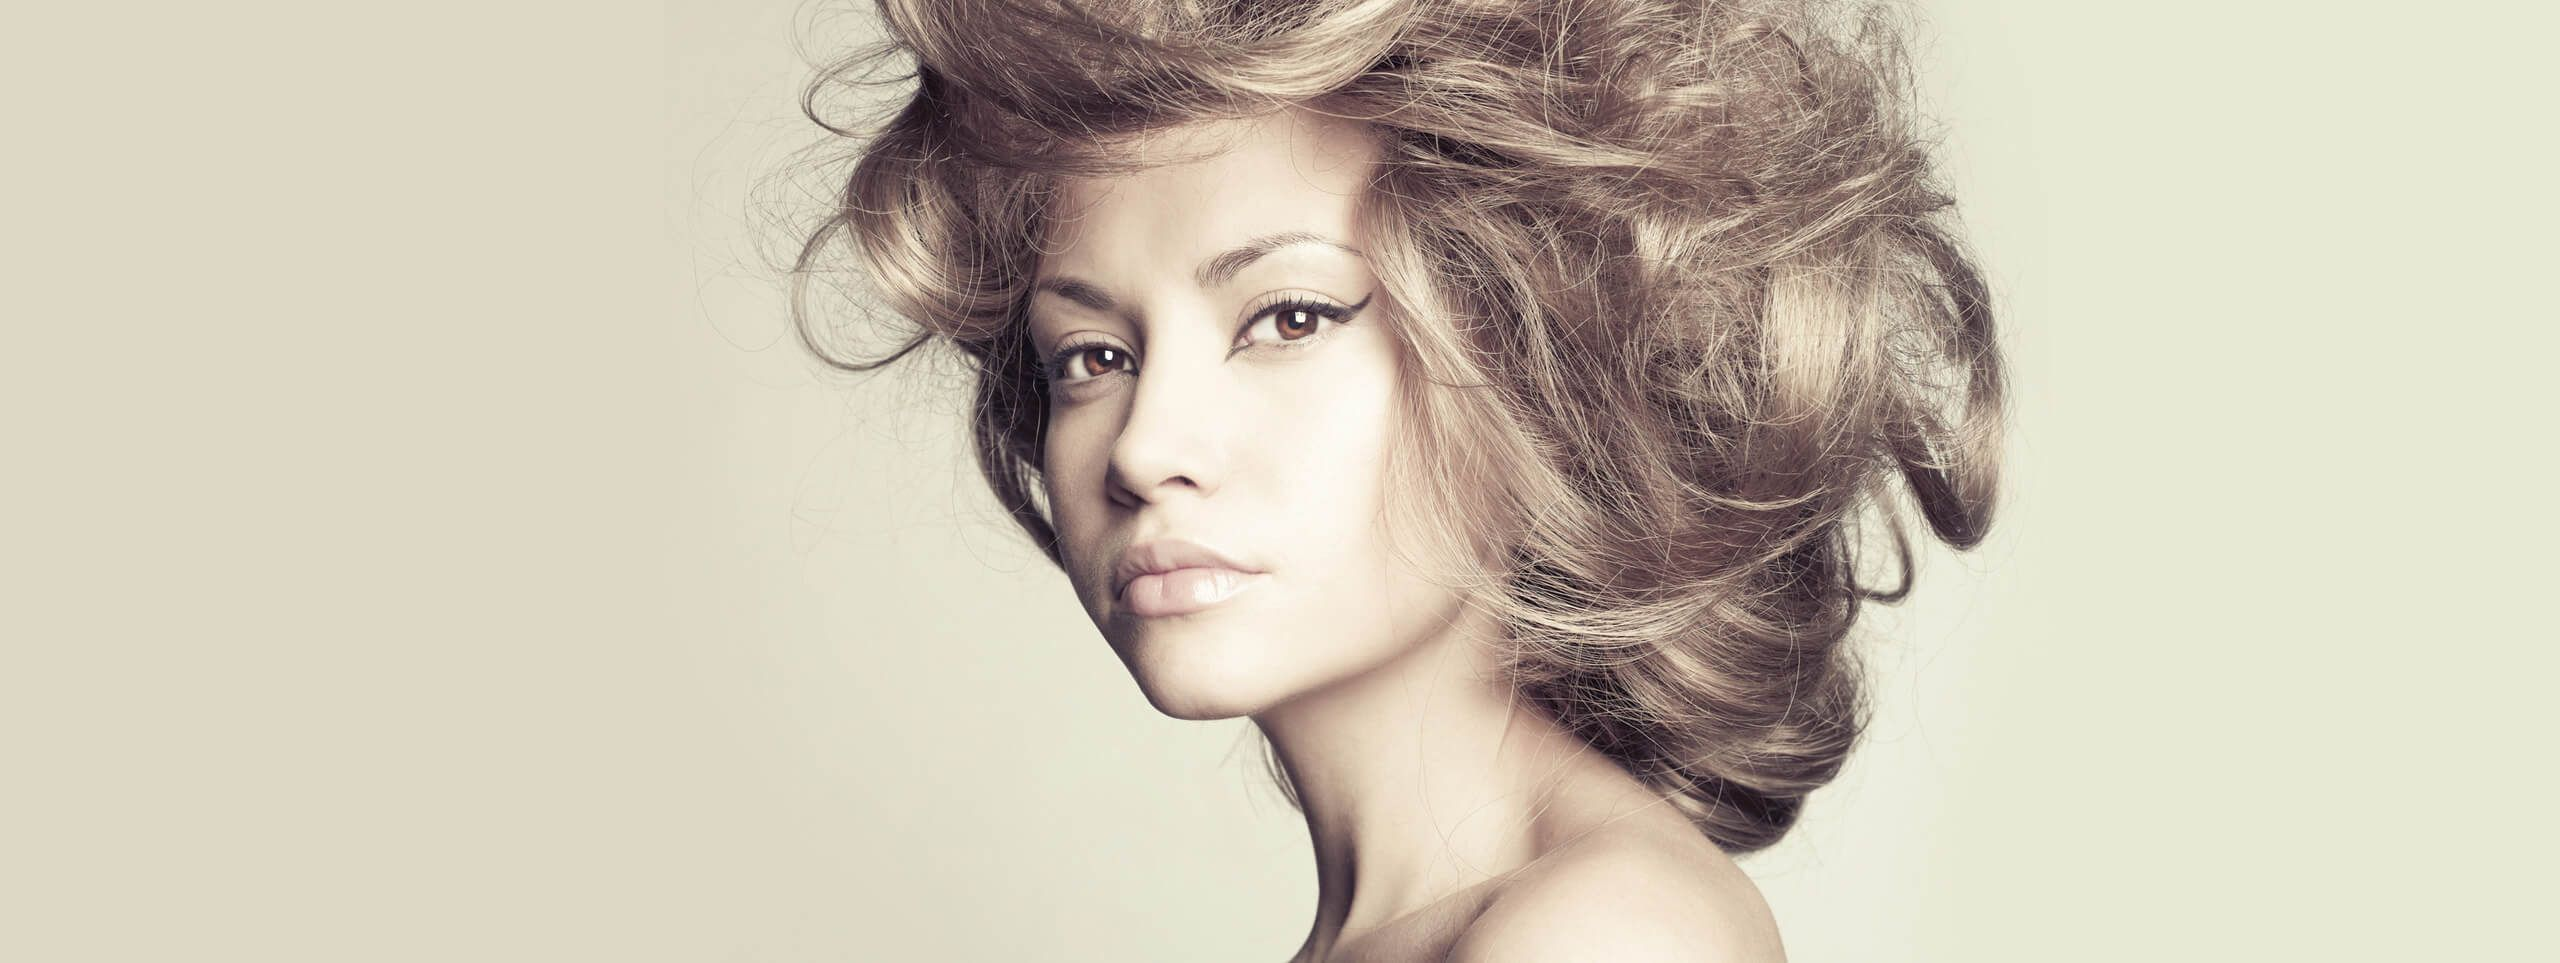 Woman with hairstyle styled with dry shampoo